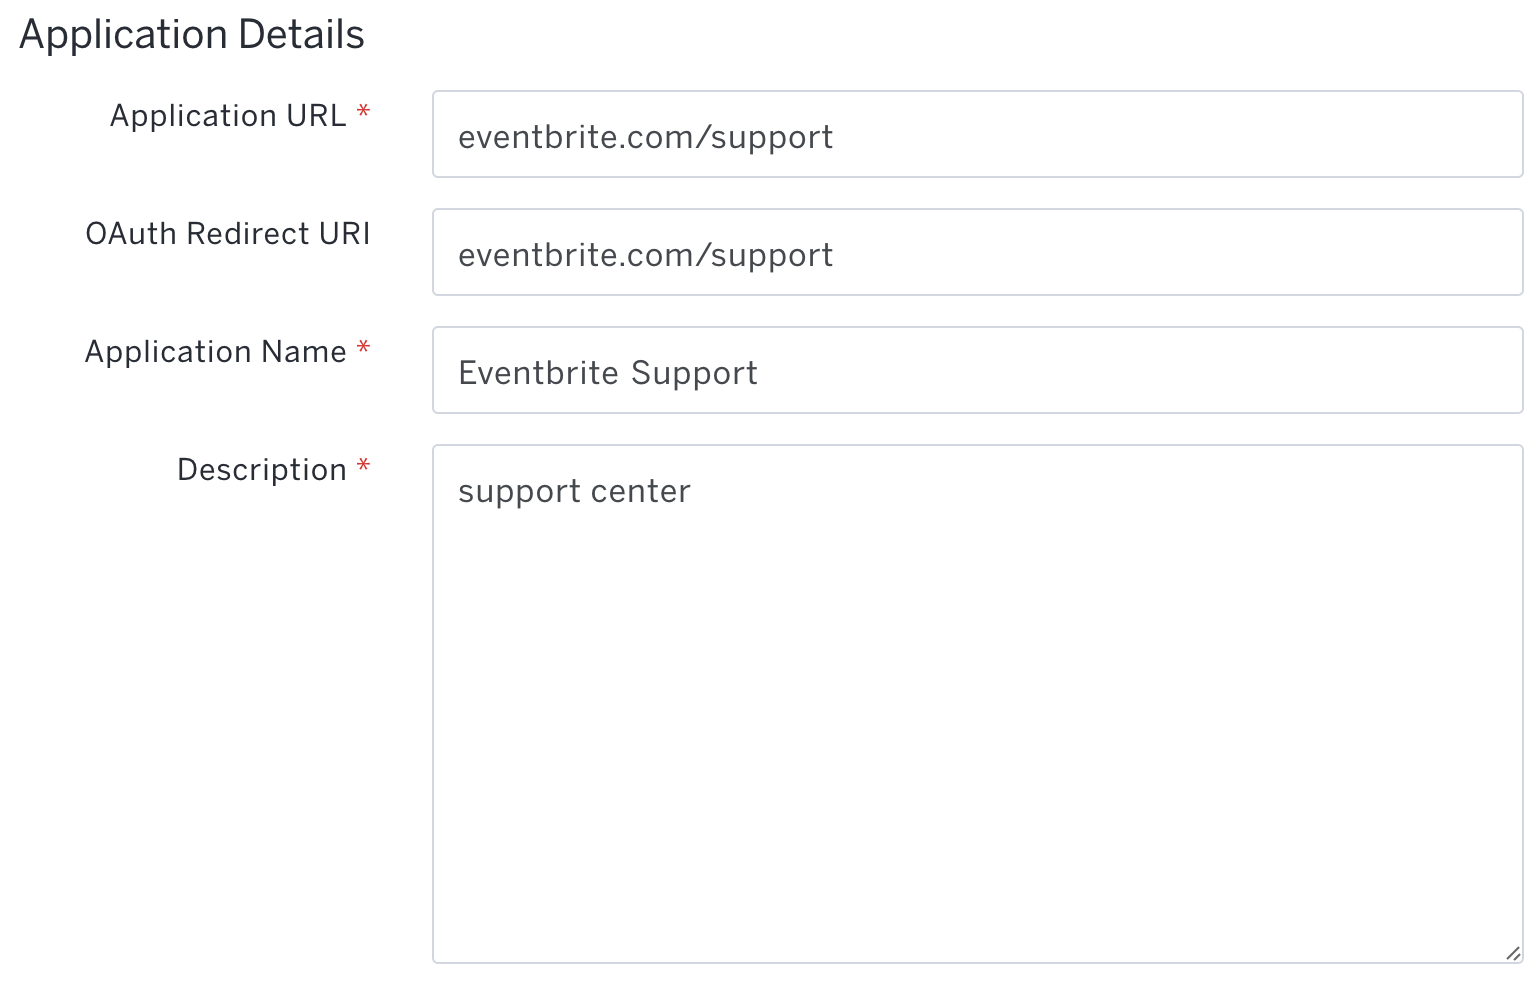 Troubleshooting issues with your redirect URI | Eventbrite Help Centre